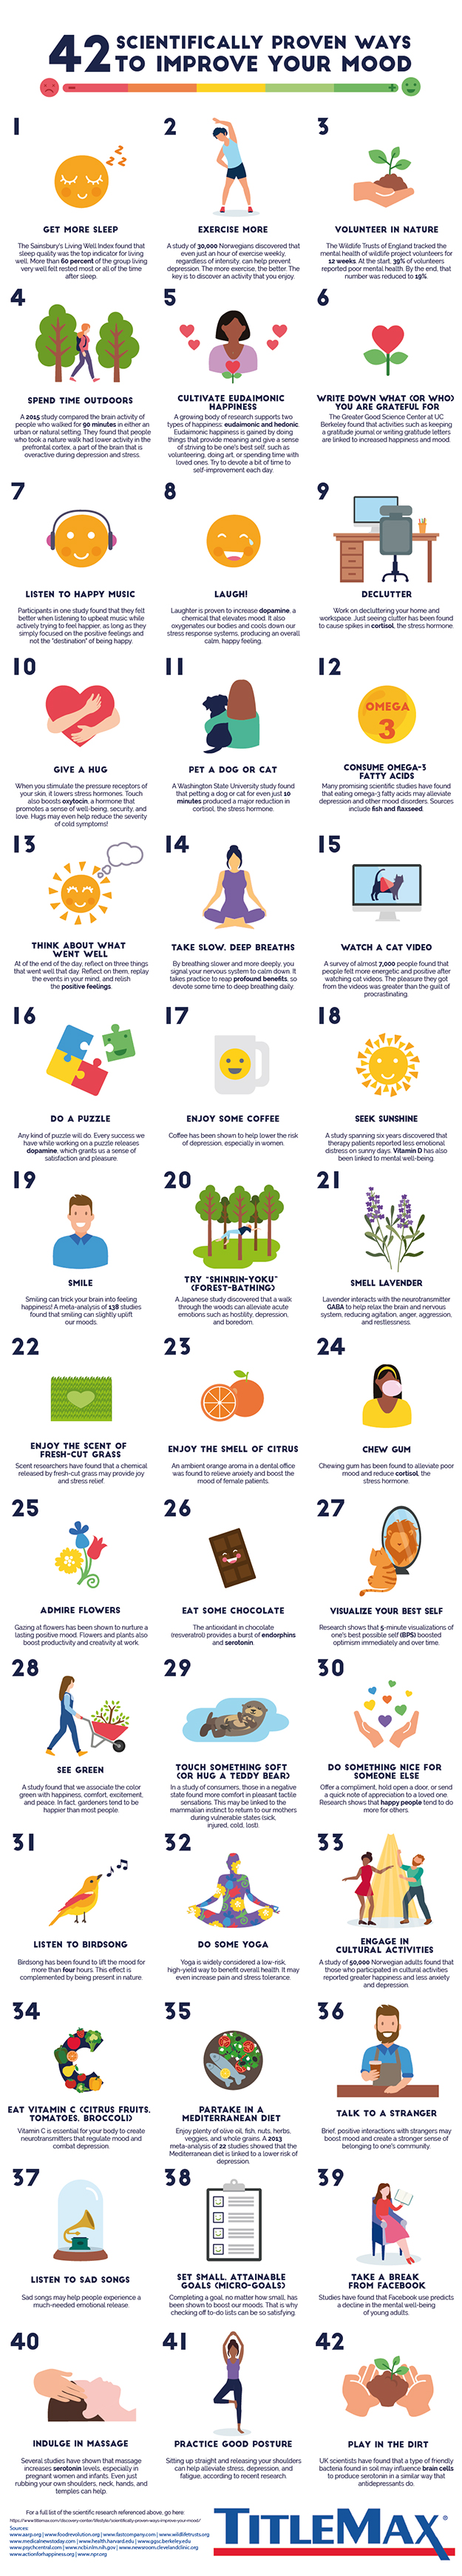 Infographic showcasing 42 Scientifically Proven Ways to Improve Your Mood